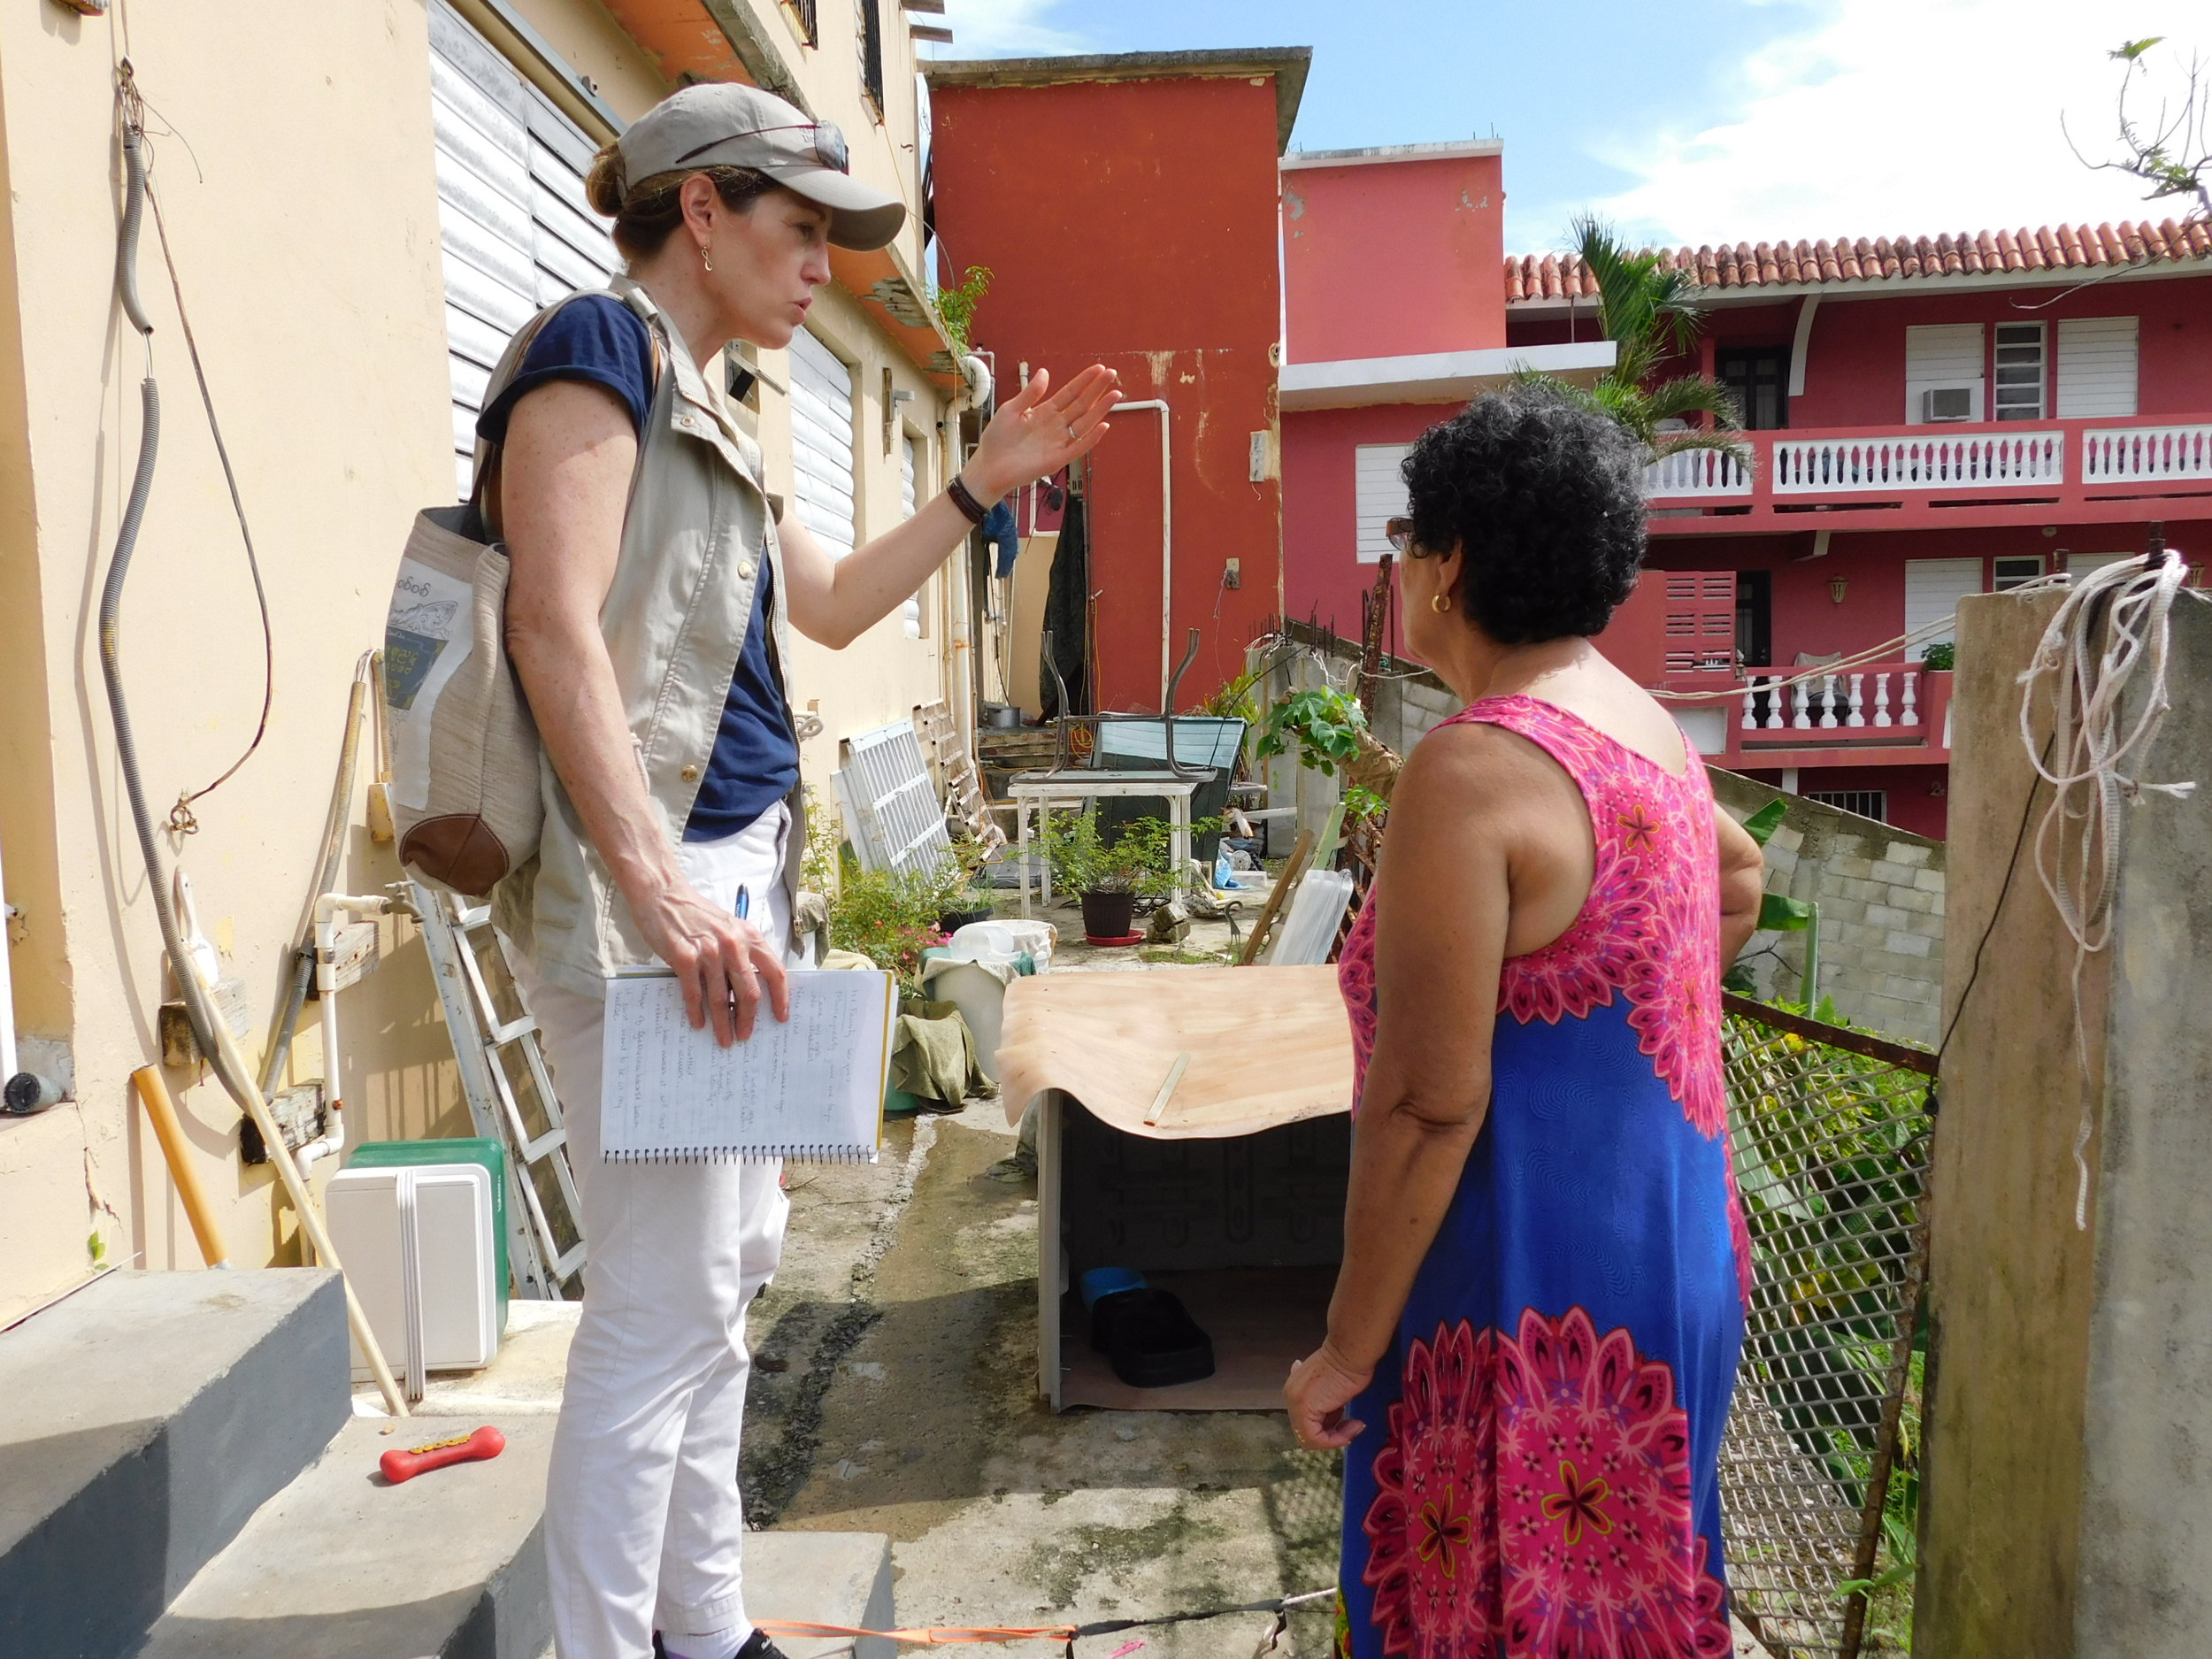 Alice Thomas, RI's Climate Displacement Program Manager, speaks to a woman in Puerto Rico after Hurricane Maria struck her island.